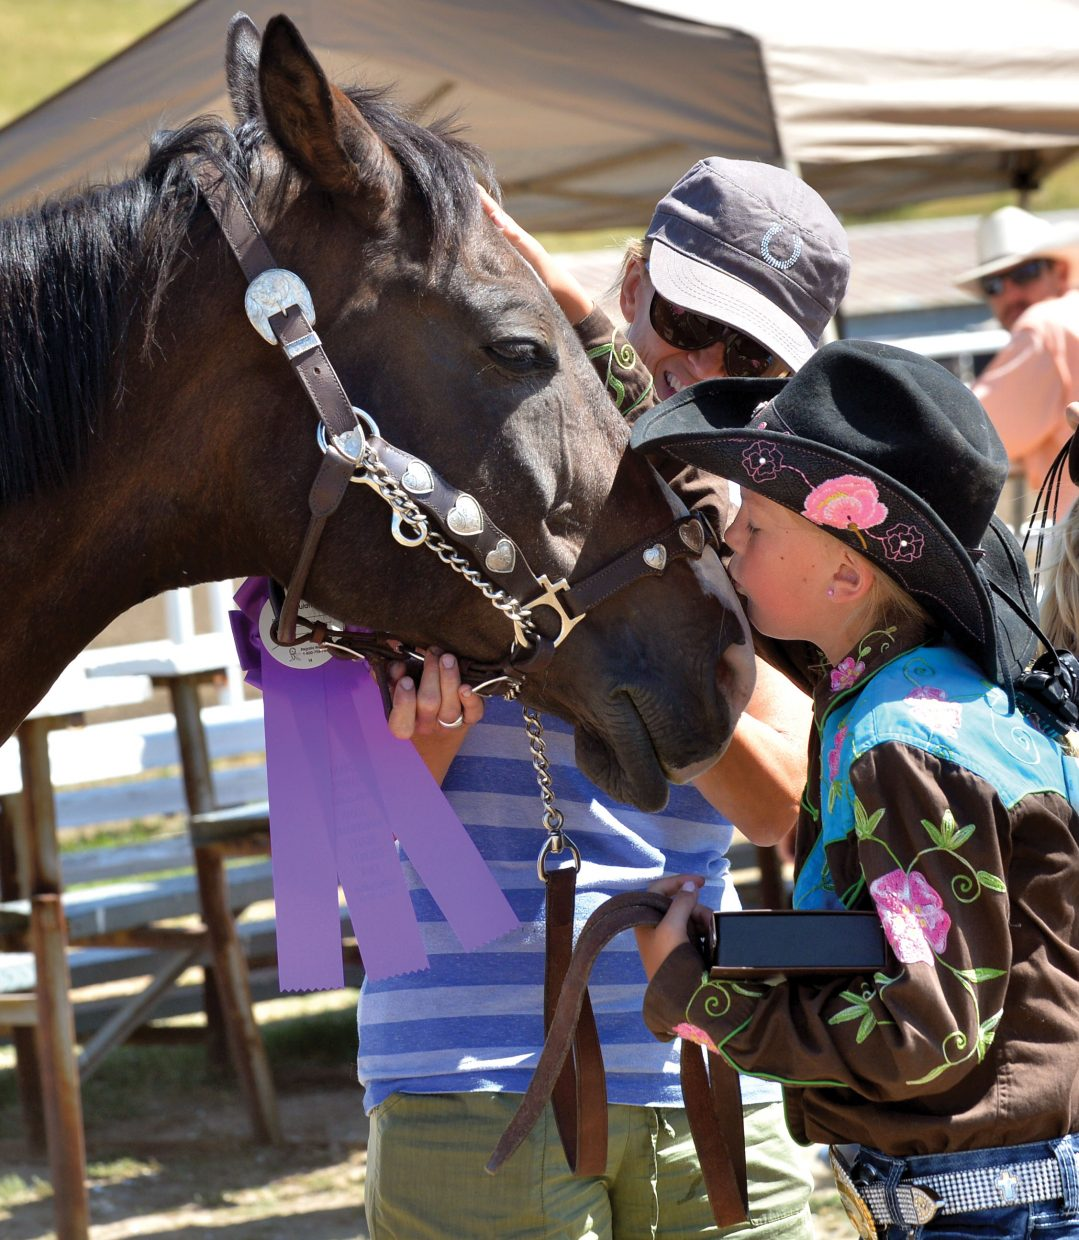 Caroline McLaughlin, 10, kisses her horse Zip after winning showmanship for the junior class at the Routt County Fair Monday in Hayden. The 4-H horse show was the first event of the week and drew more than 40 competitors to the arena to compete in halter, showmanship and riding classes.